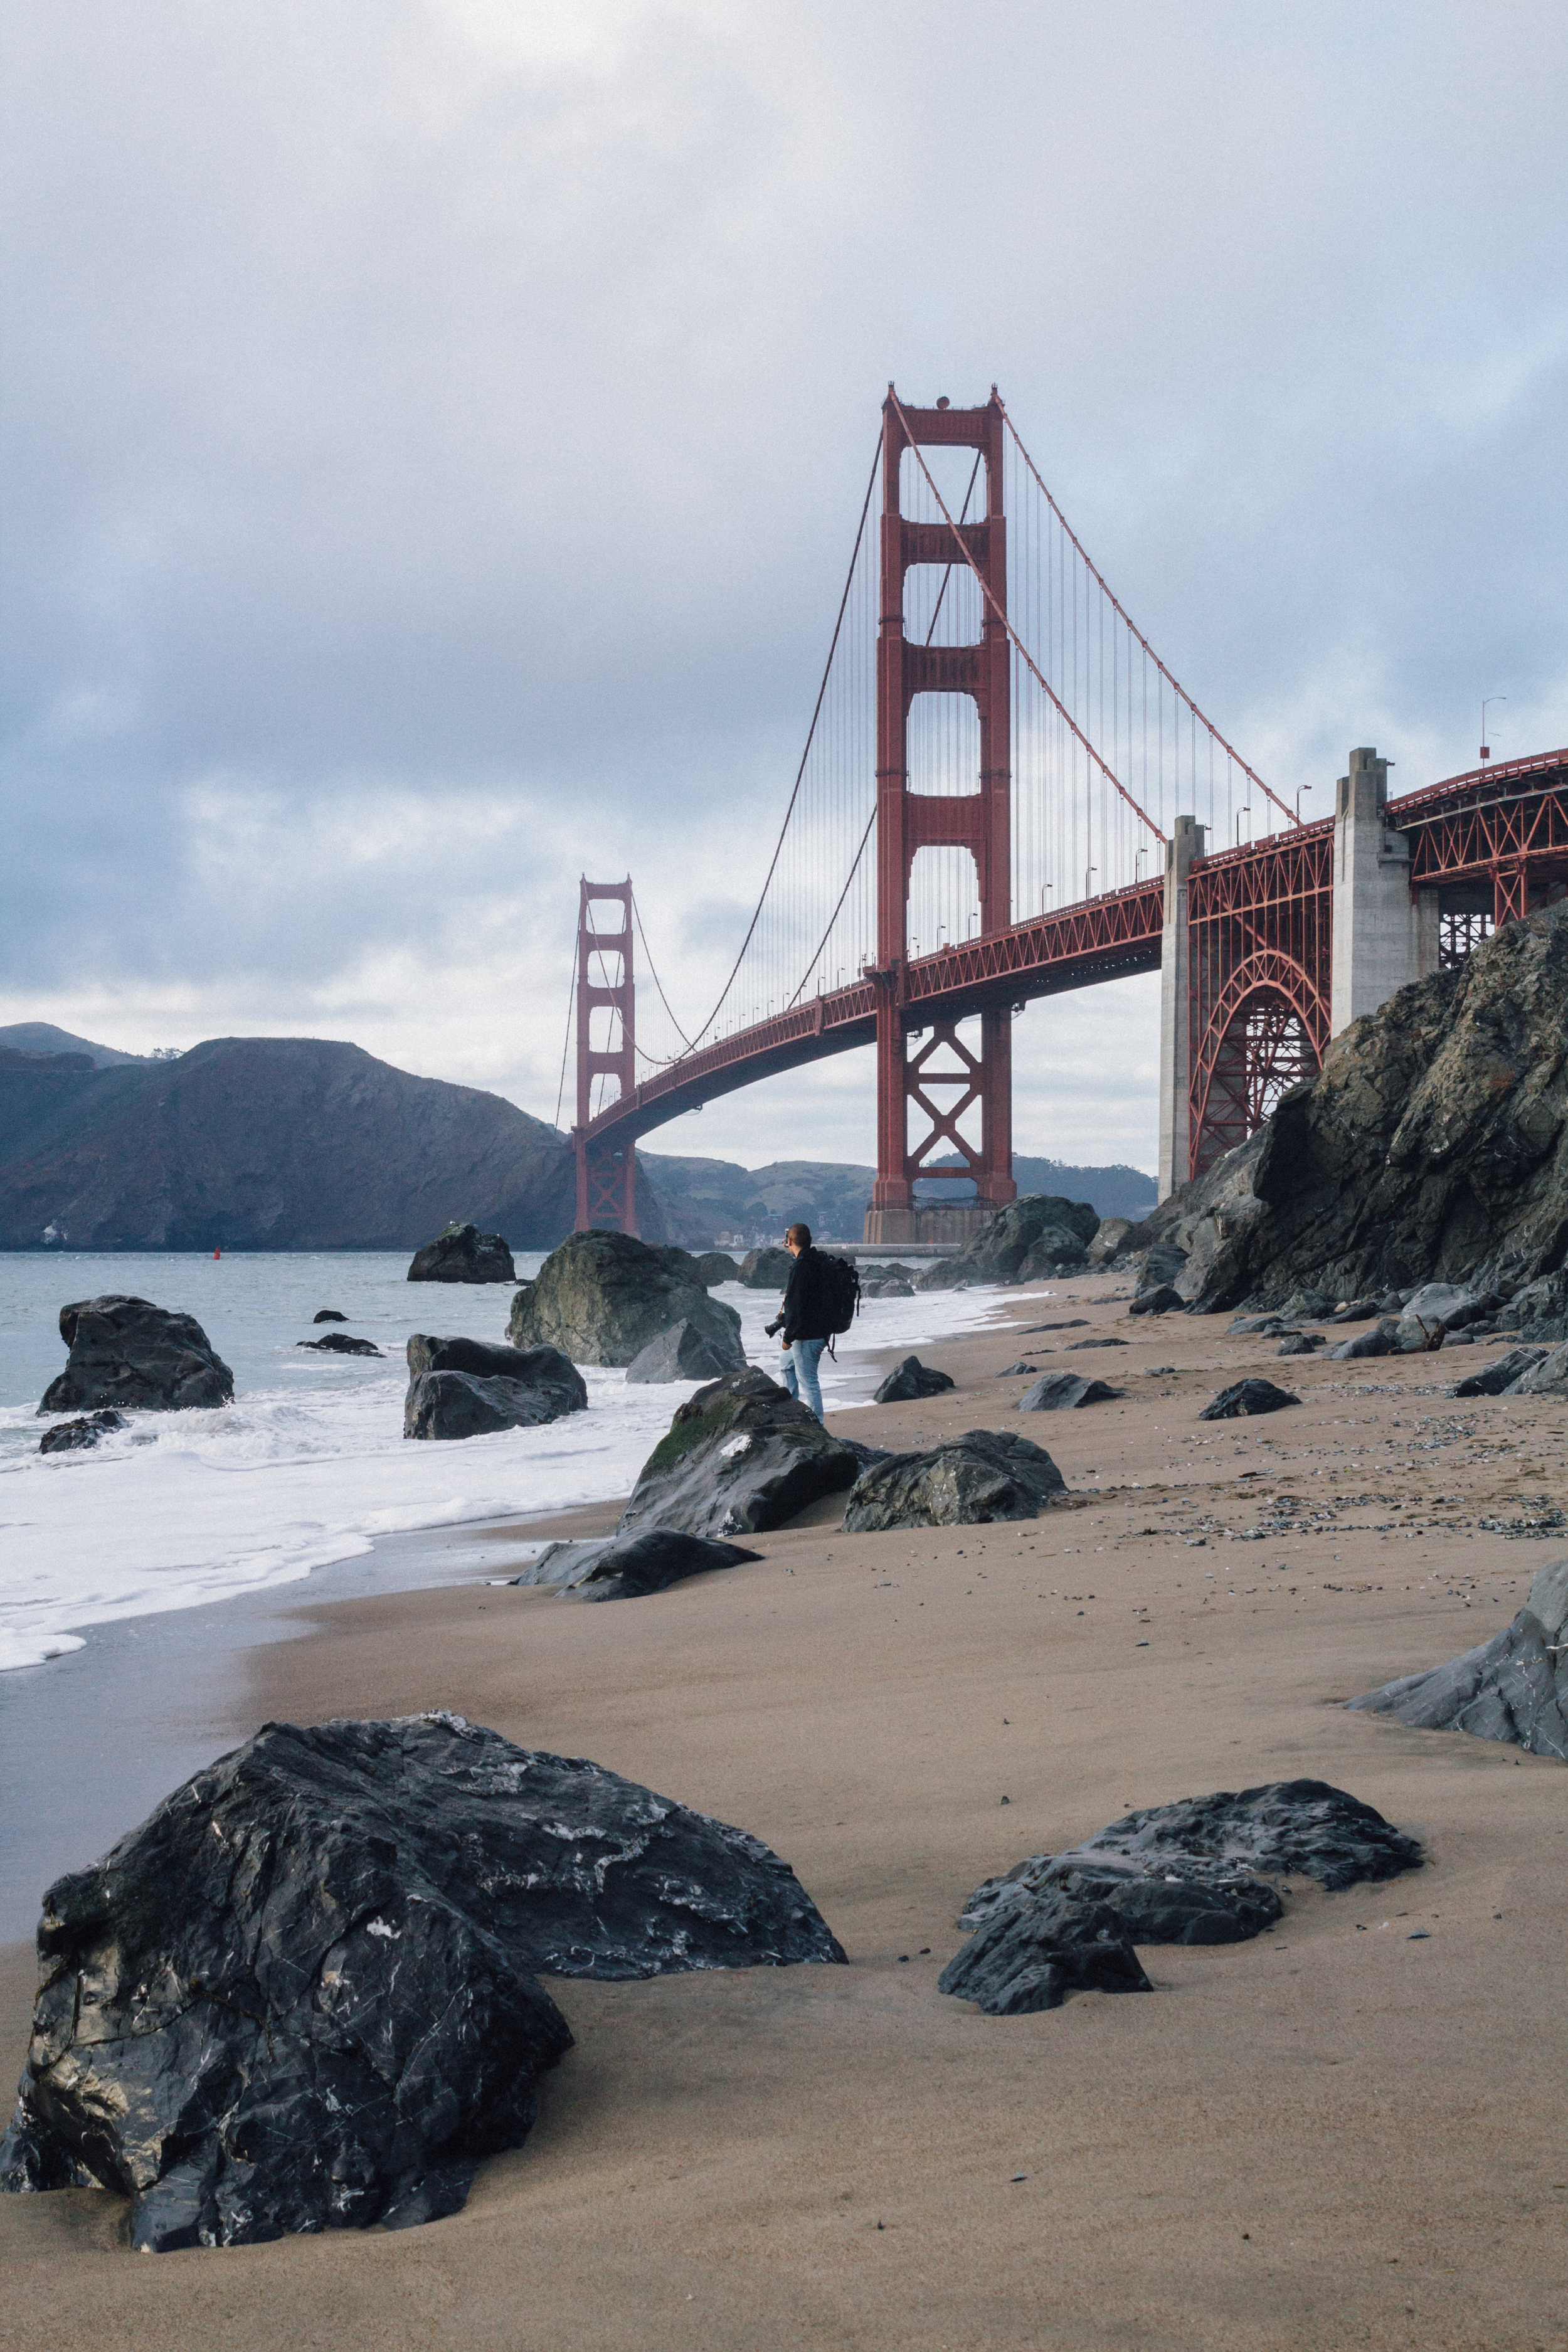 Christian & The Golden Gate by Catherine Alyce